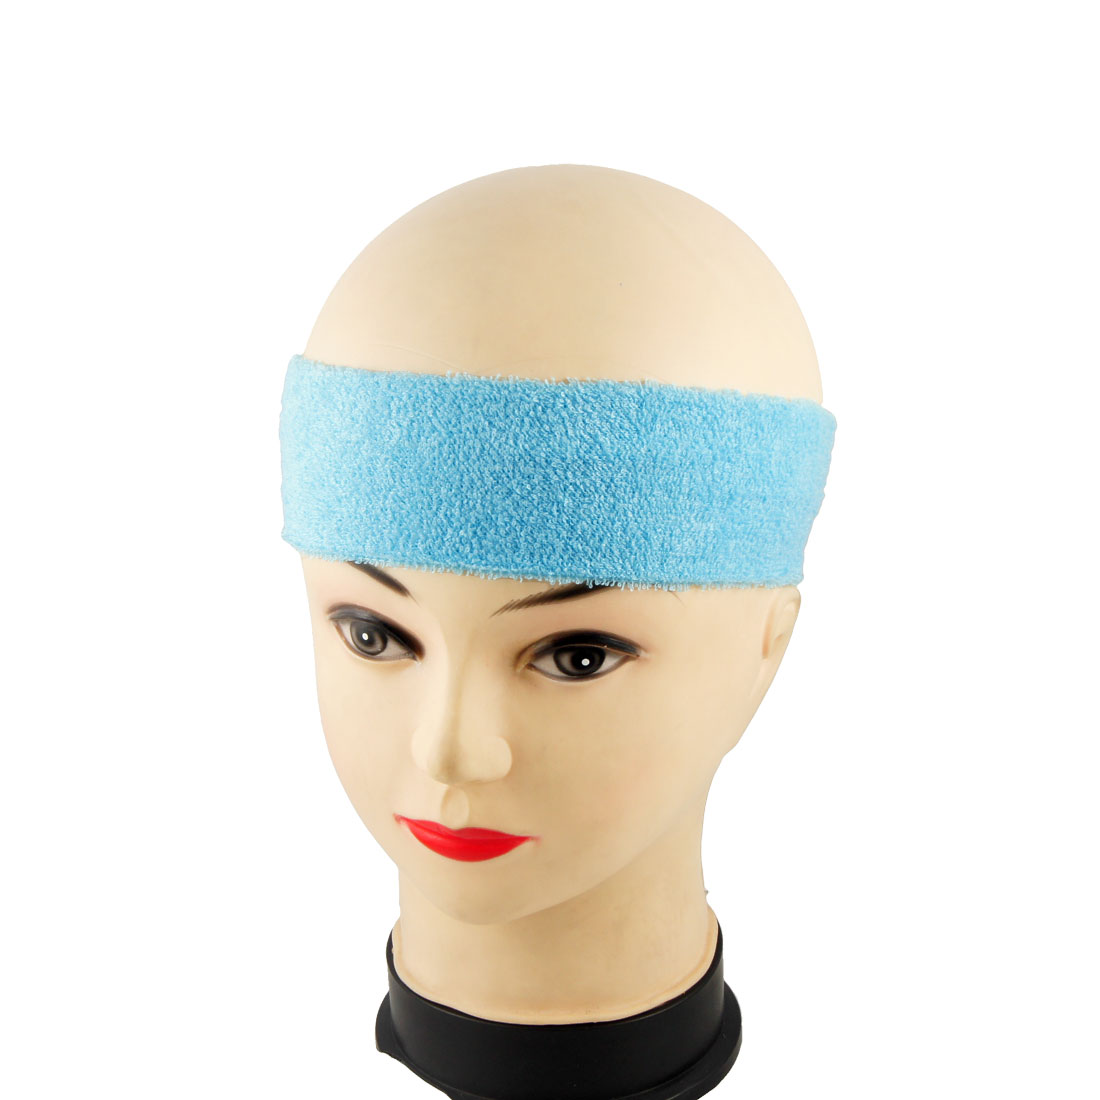 Sky Blue Elastic Fabric Hair Band for Holding Forehead Hair 2 Pcs